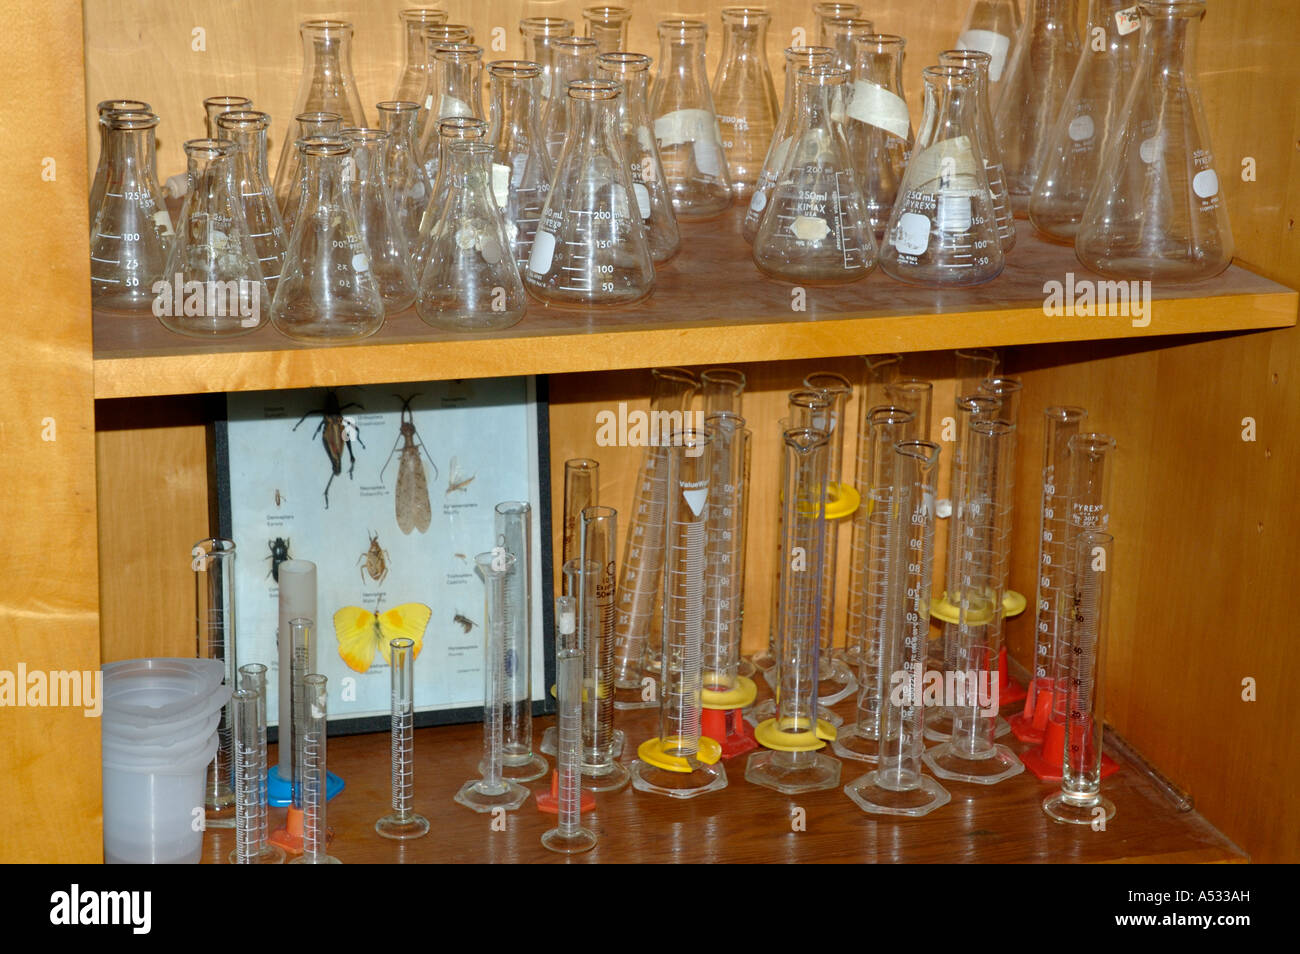 Glassware flasks beakers cylinders on shelves in school biology classroom - Stock Image